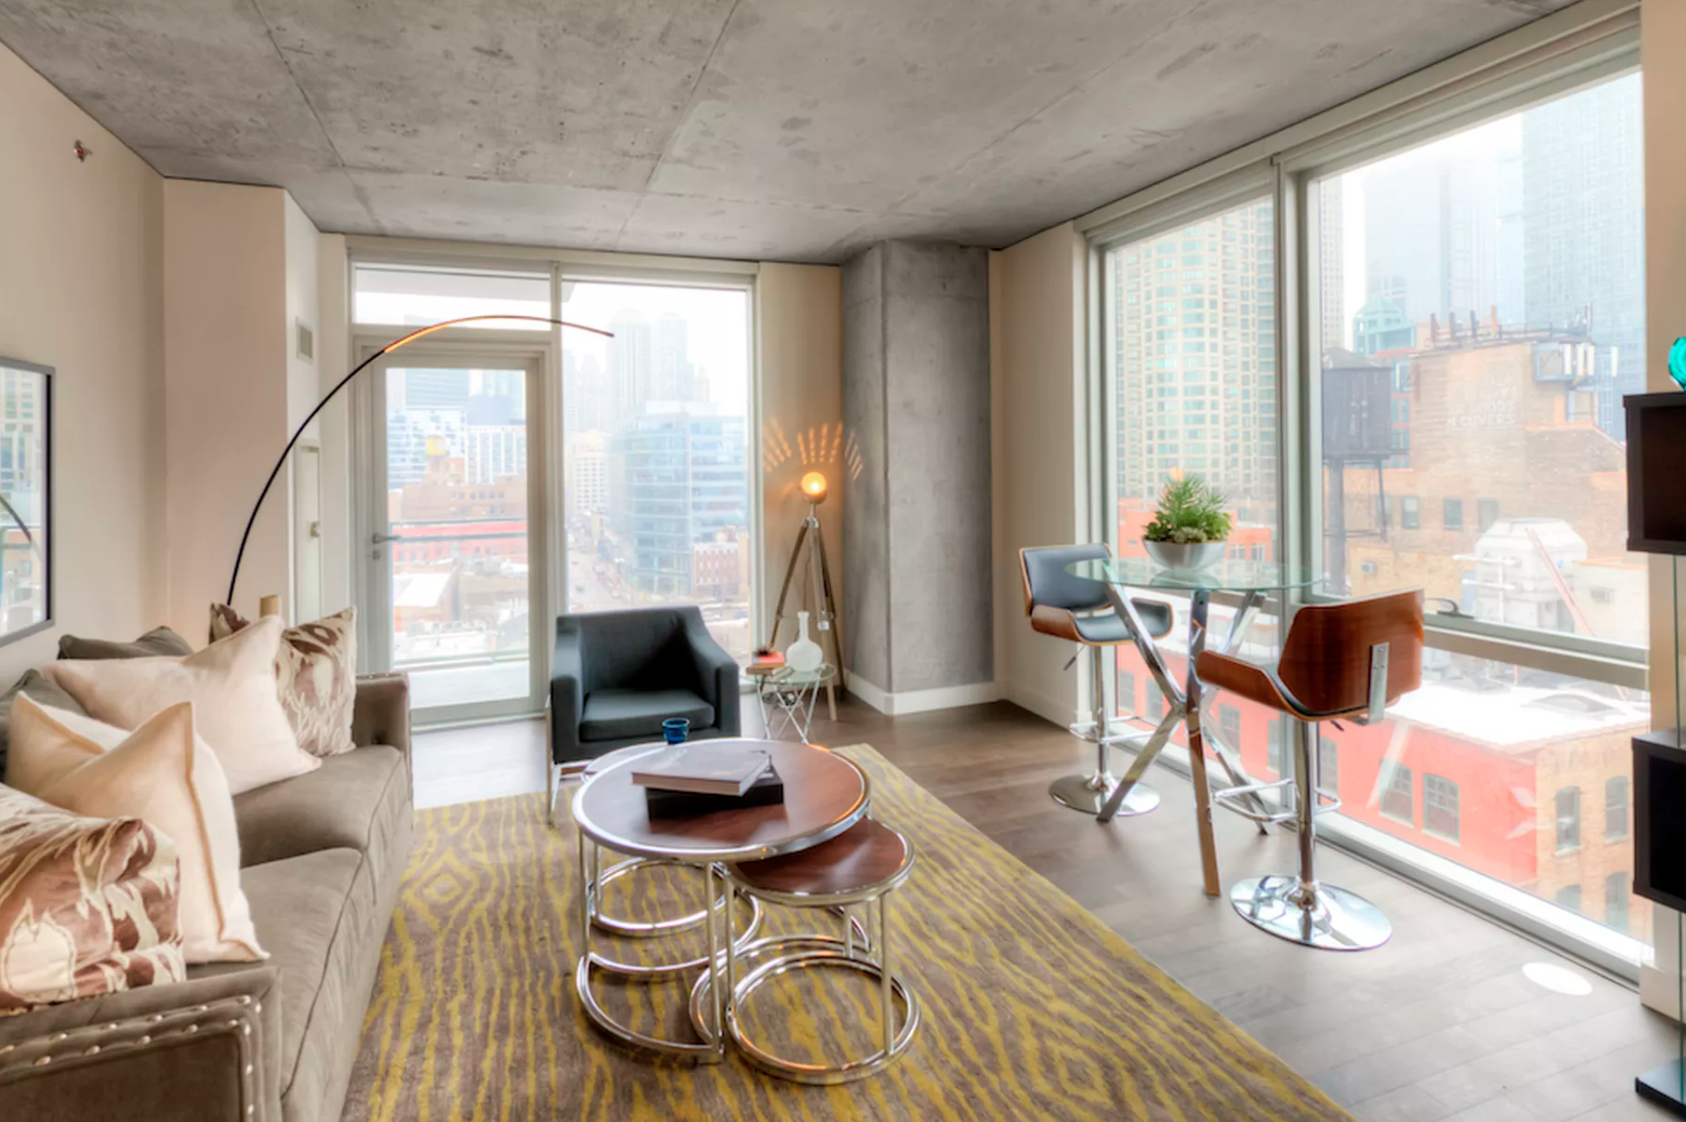 A model unit in River North's the Jones Chicago apartments. Jones Chicago